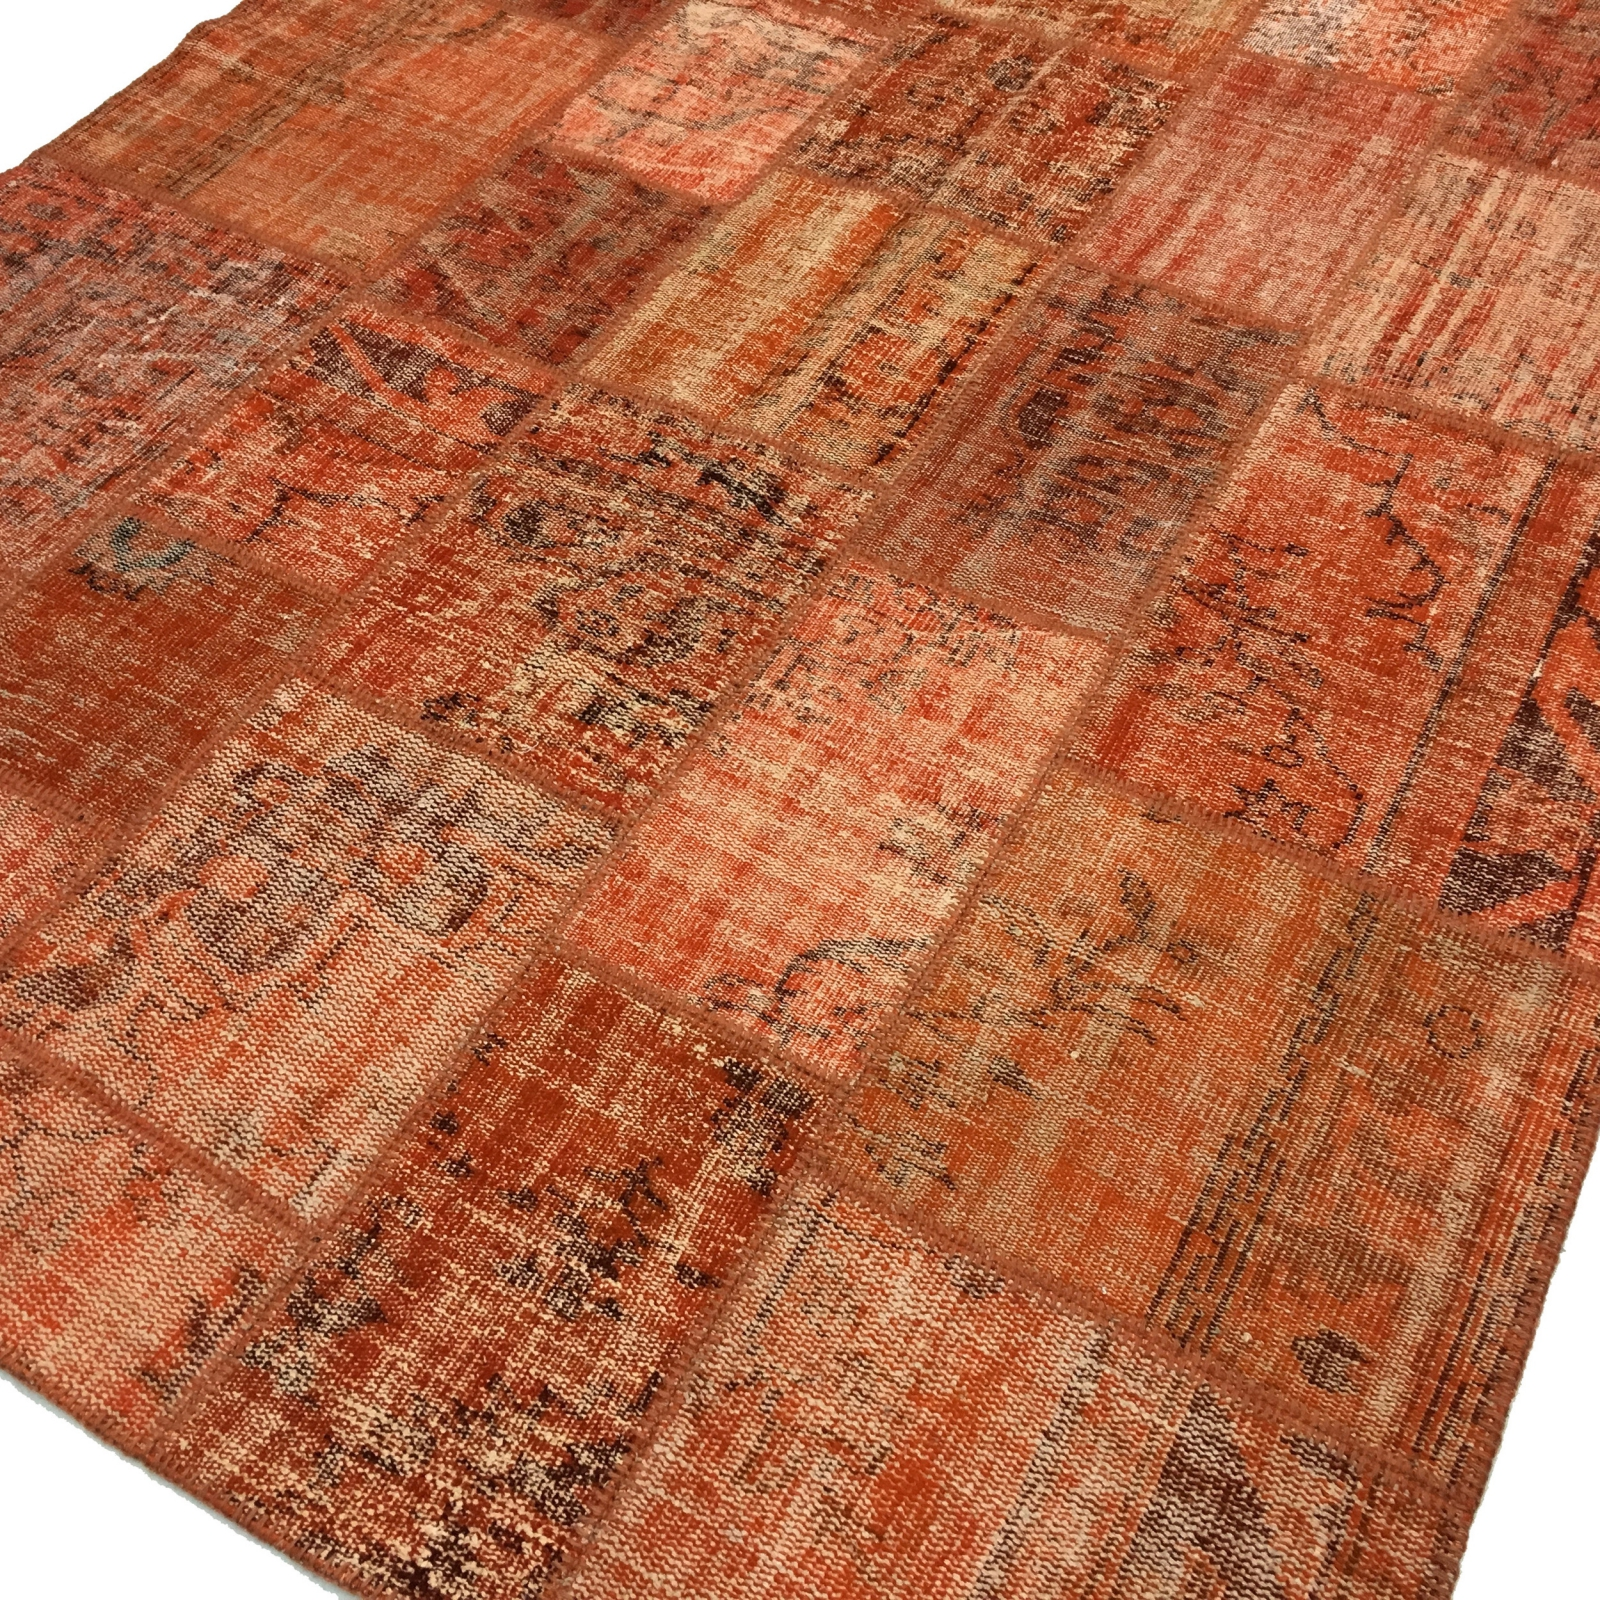 Teppich orange  Orange vintage patchwork flicken teppich (206x304cm)